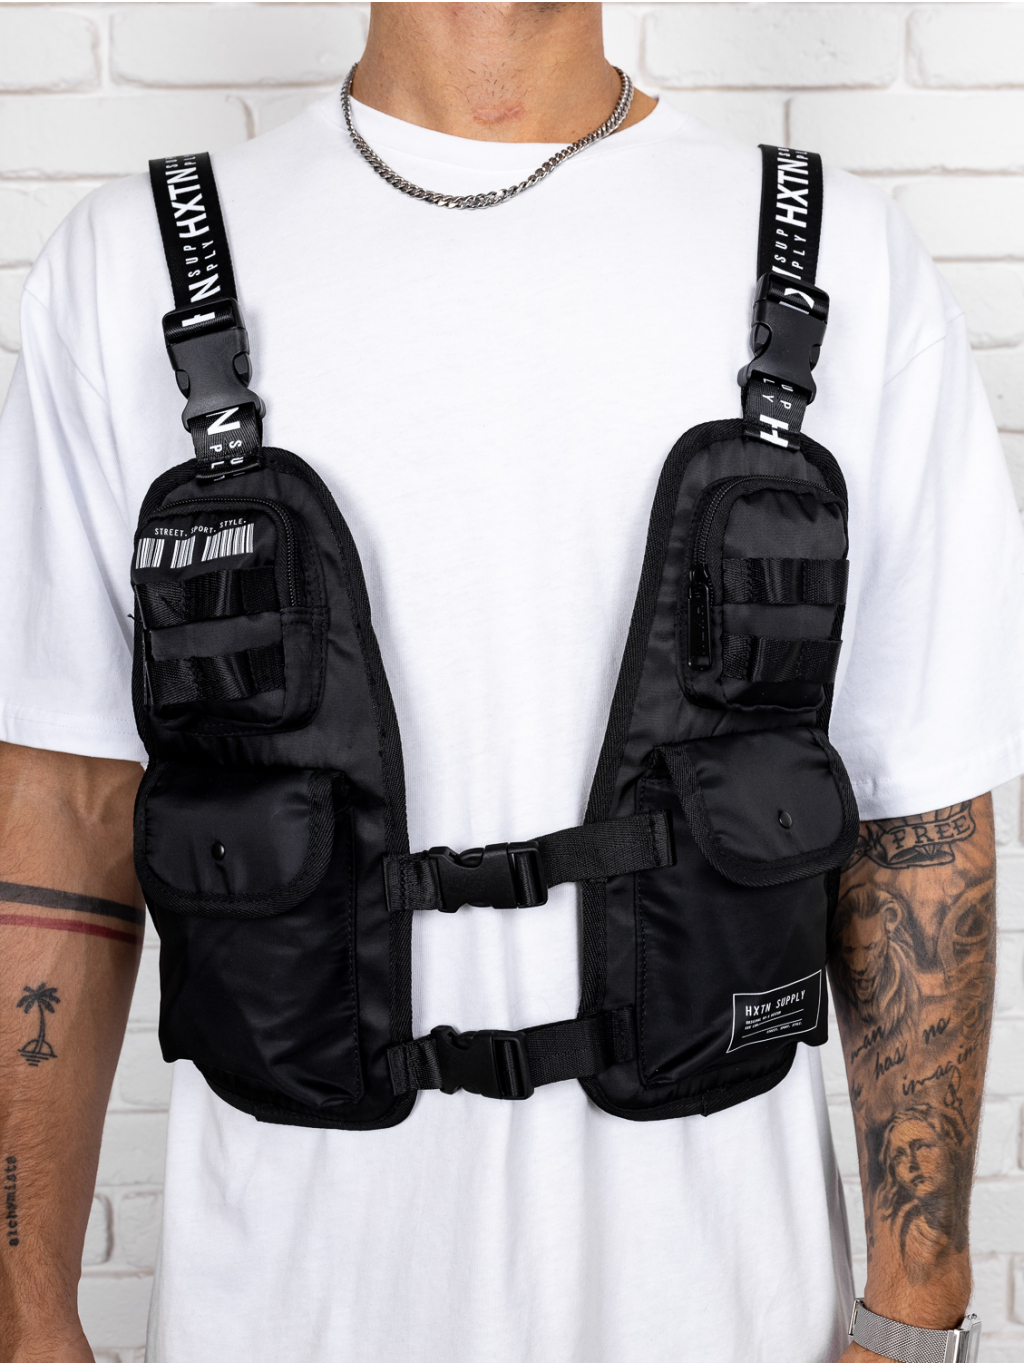 Bodybag Tactical